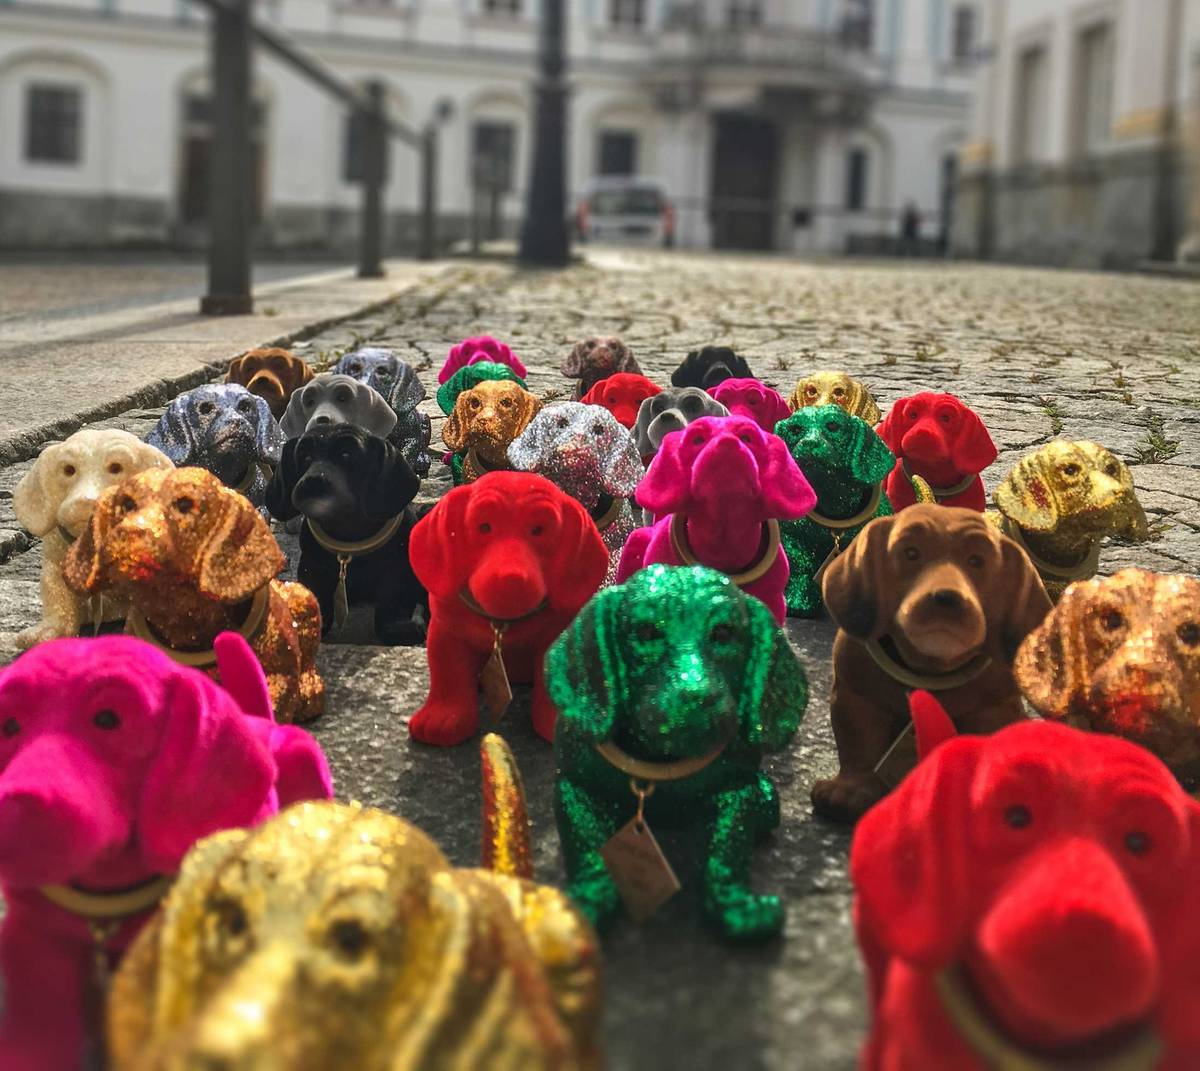 Dachshund get their own museum in Germany